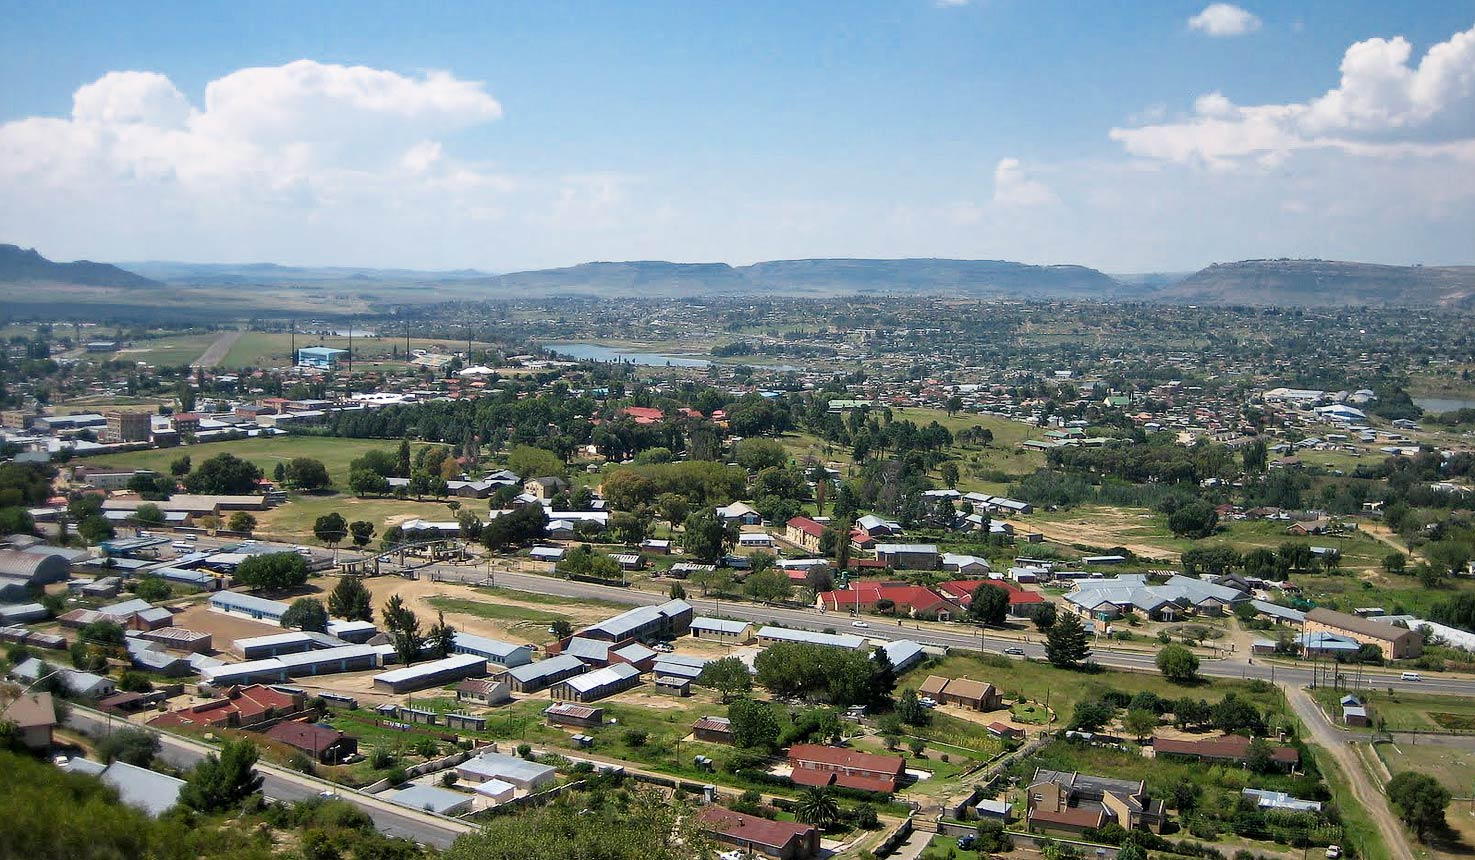 Maseru Lesotho  city images : Maseru, Lesotho Travel Guide and Travel Info